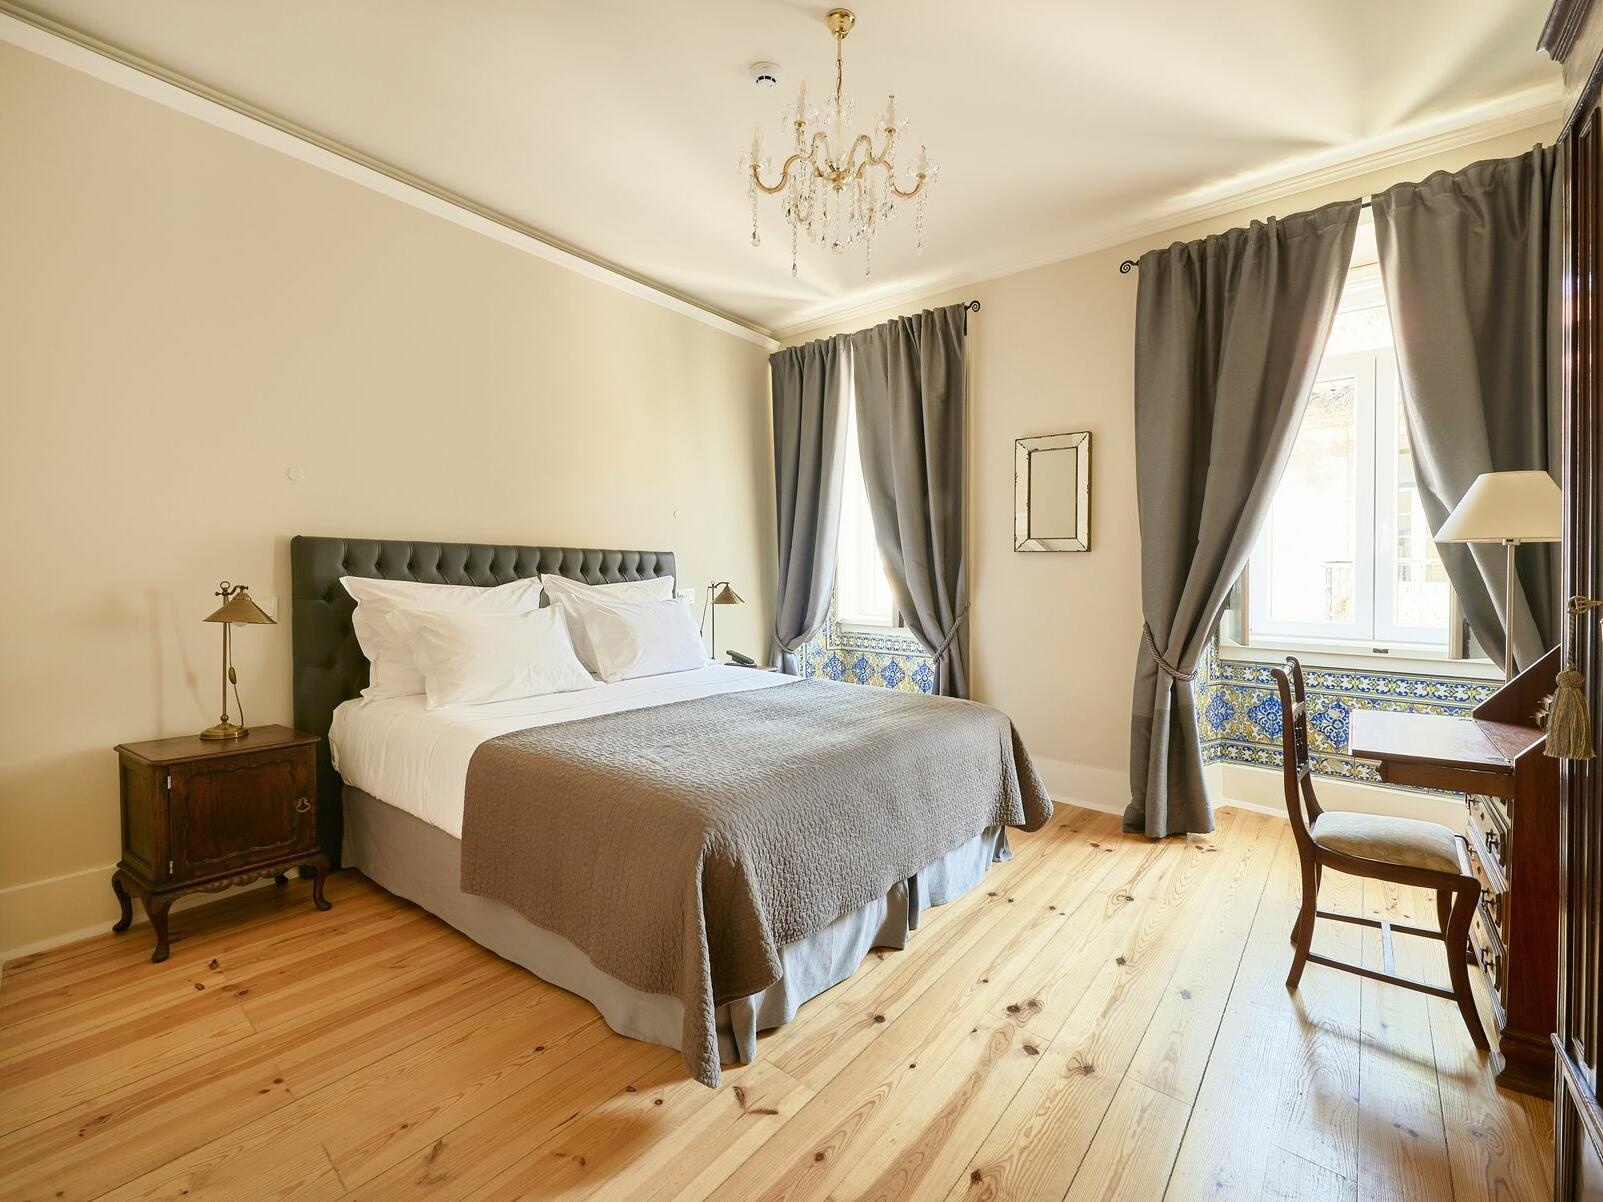 Hotel Alegria room with king bed and desk near windows